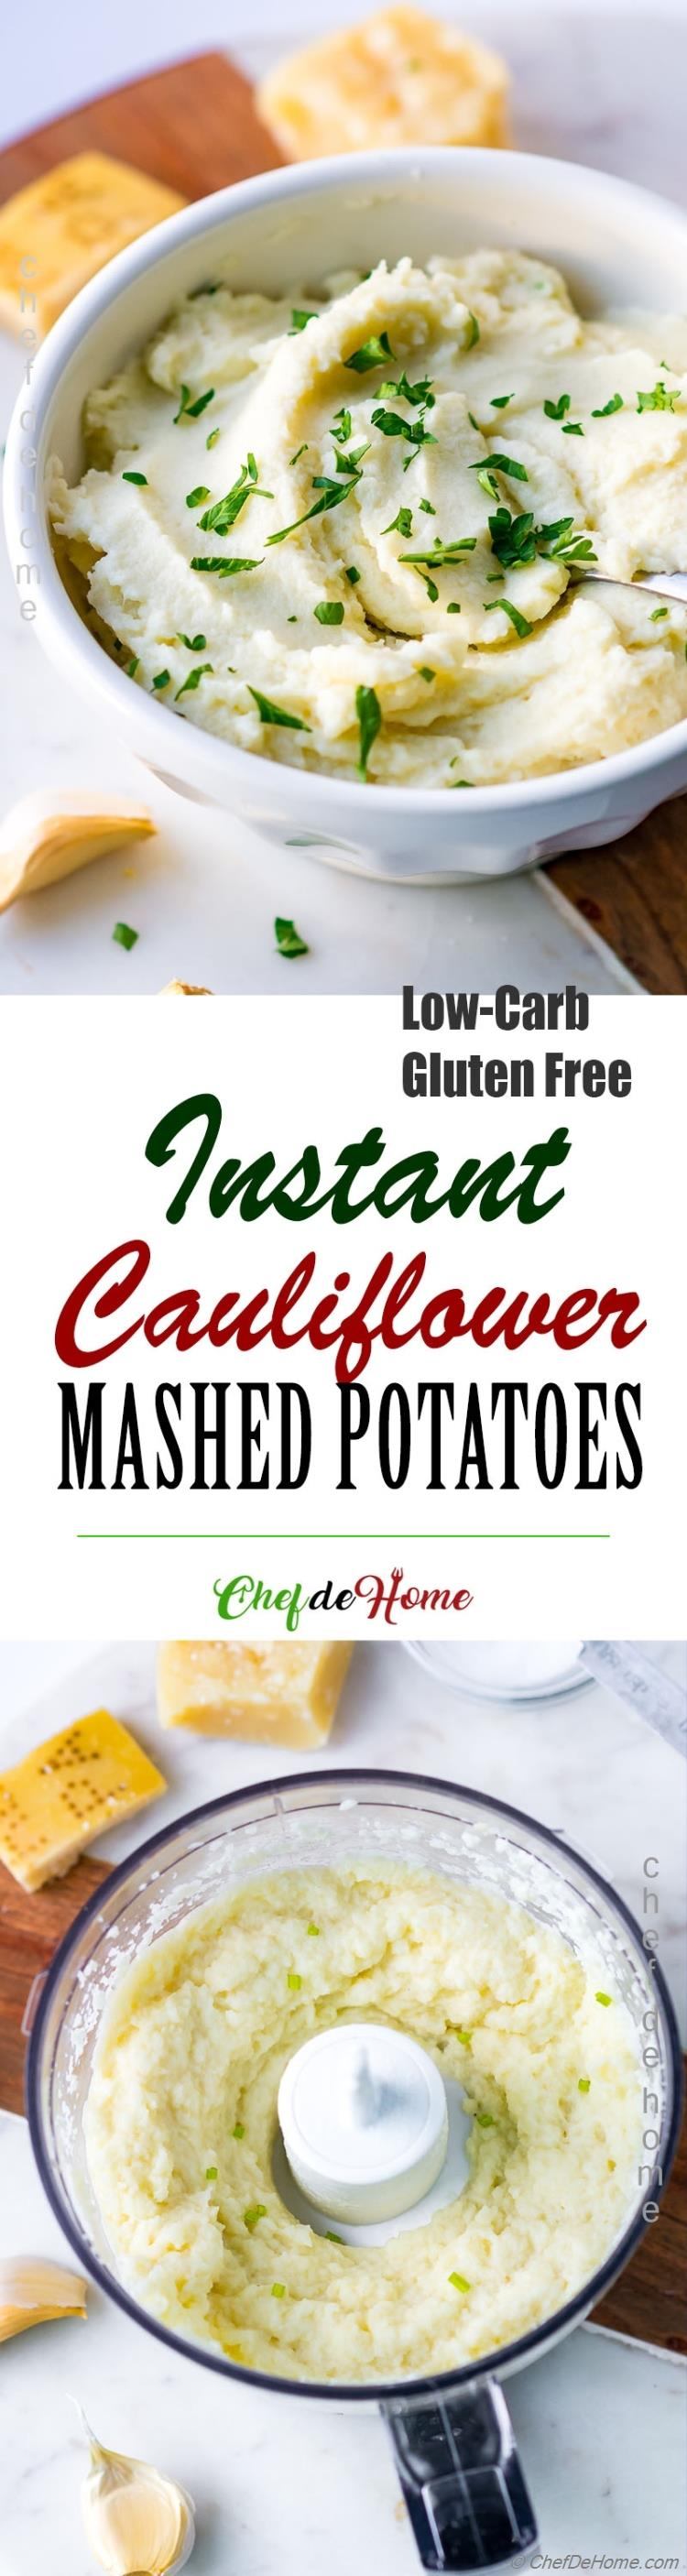 Low Carb Cauliflower Mashed Potatoes